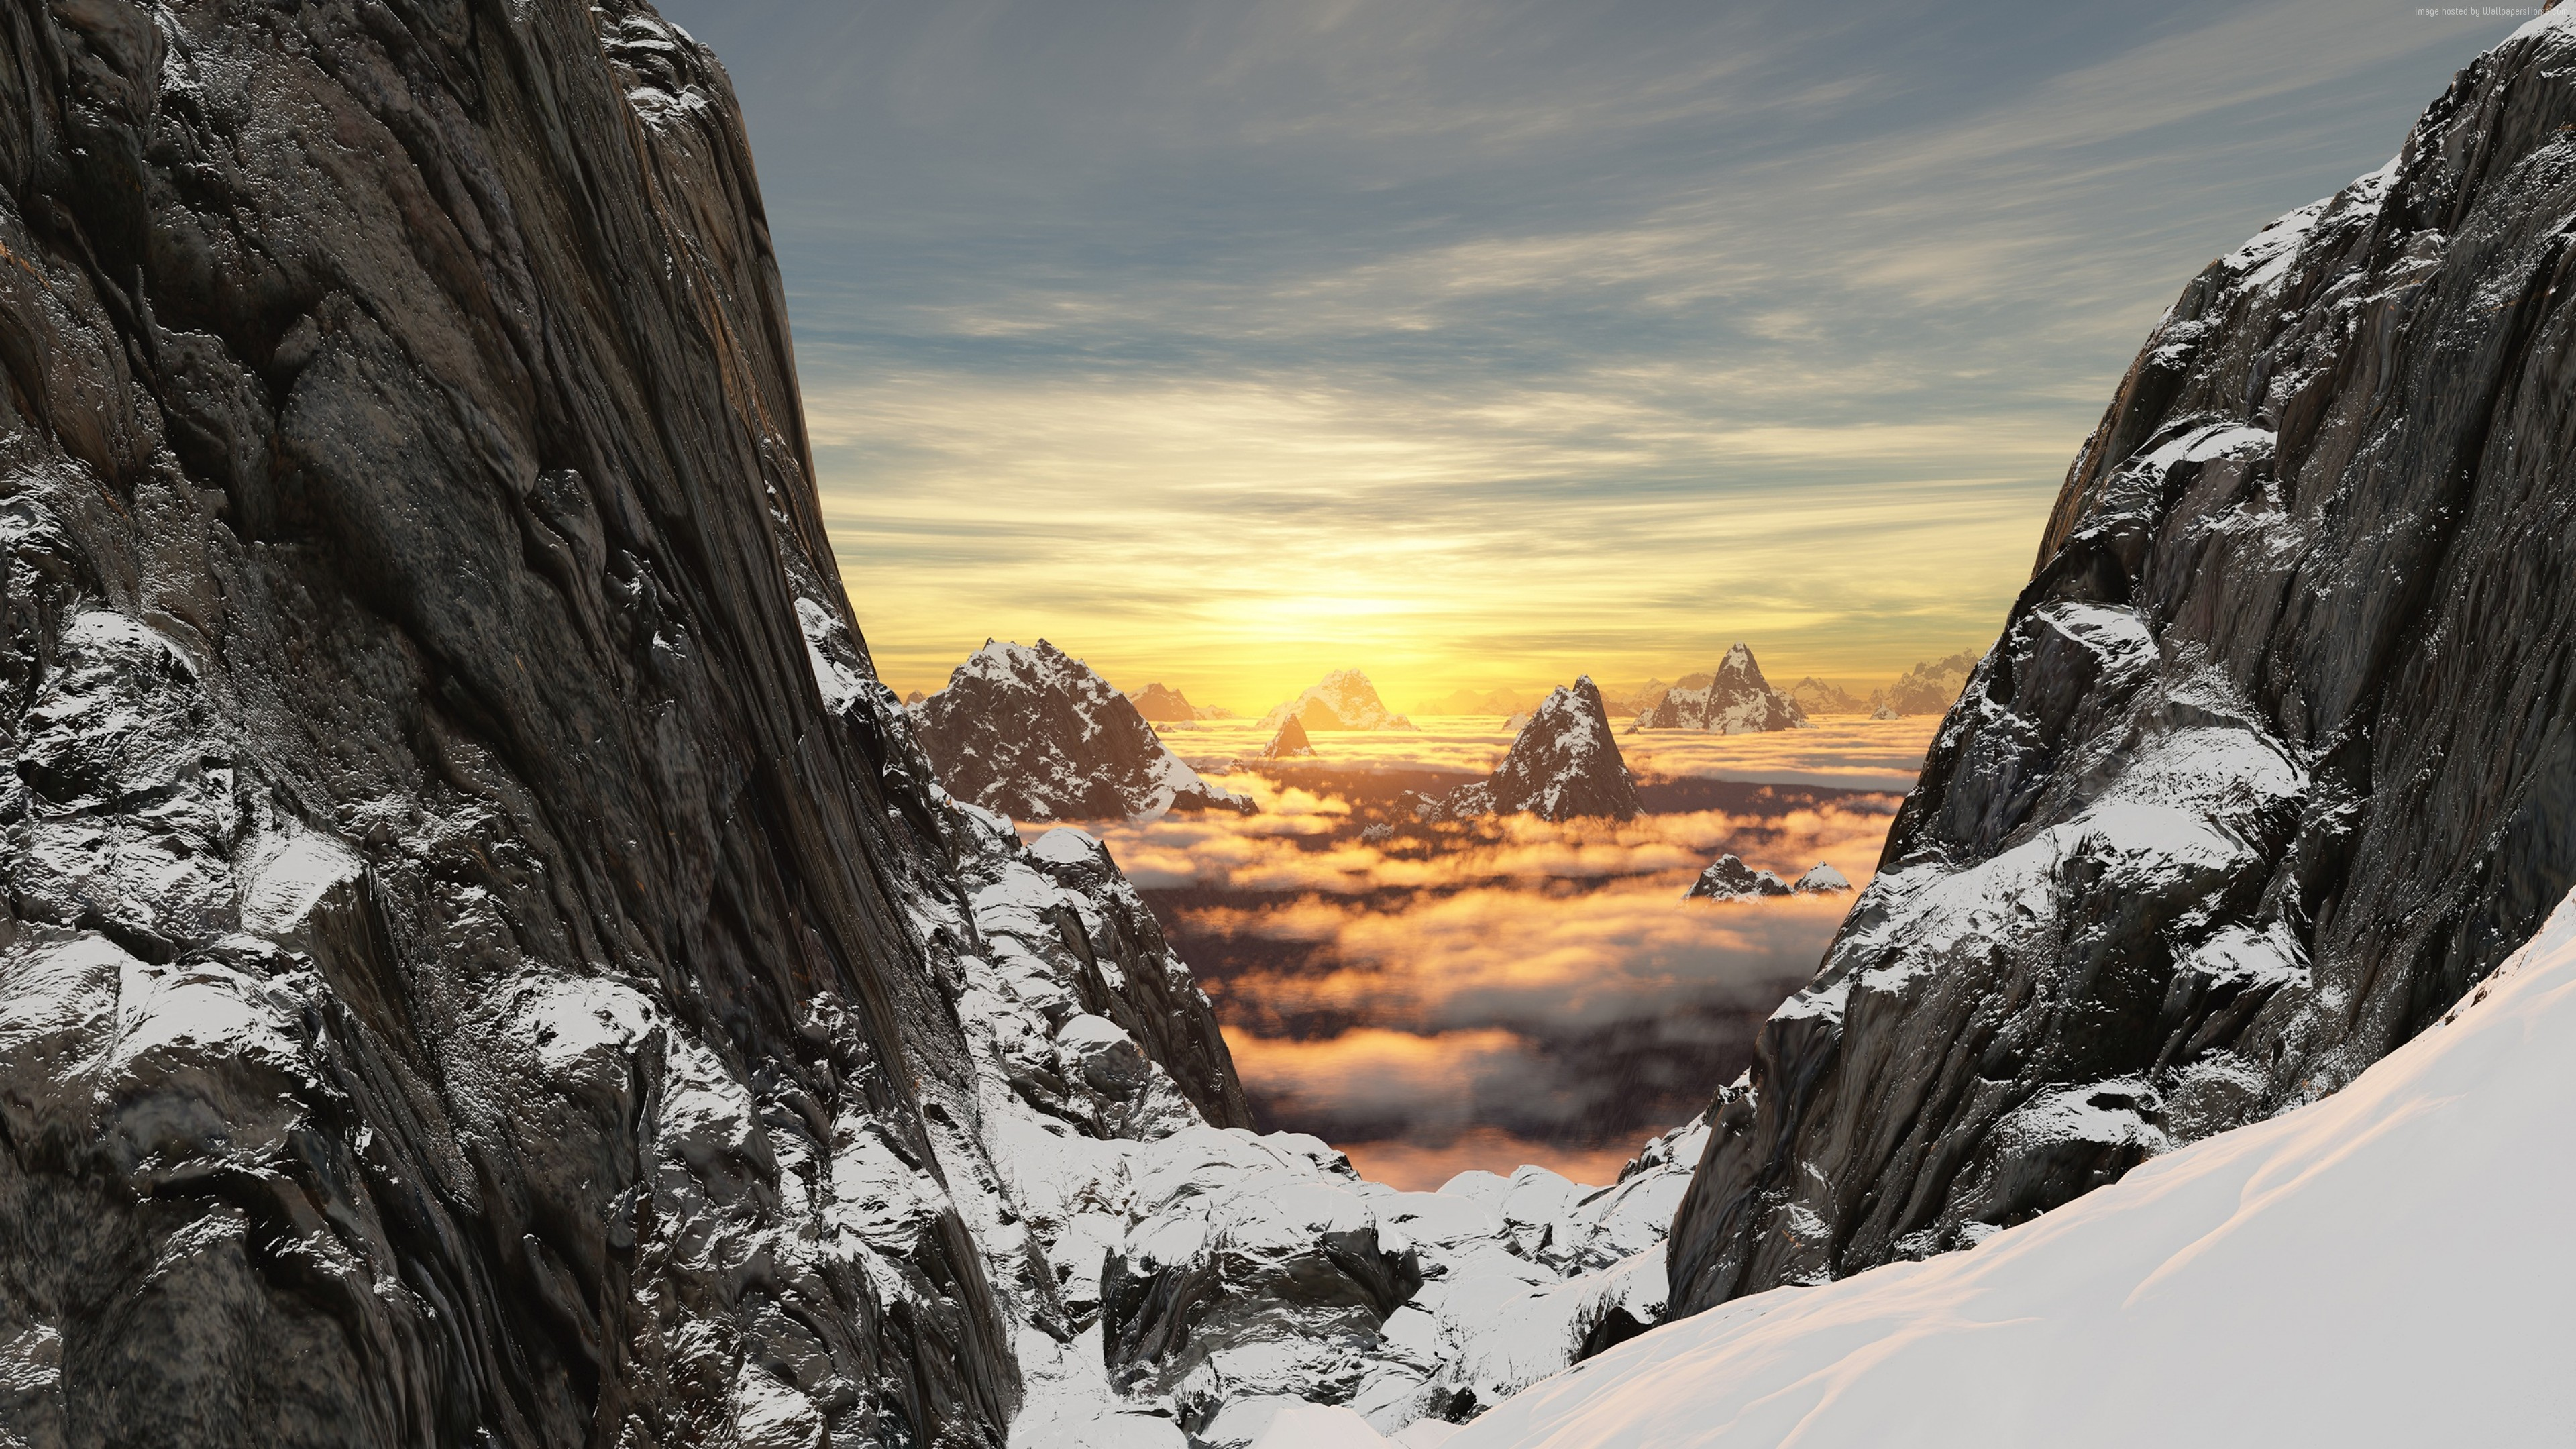 Wallpaper Mountain Snow Rock High Altitude 4k Nature 4k Mountain And Clouds 3840x2160 Wallpaper Teahub Io